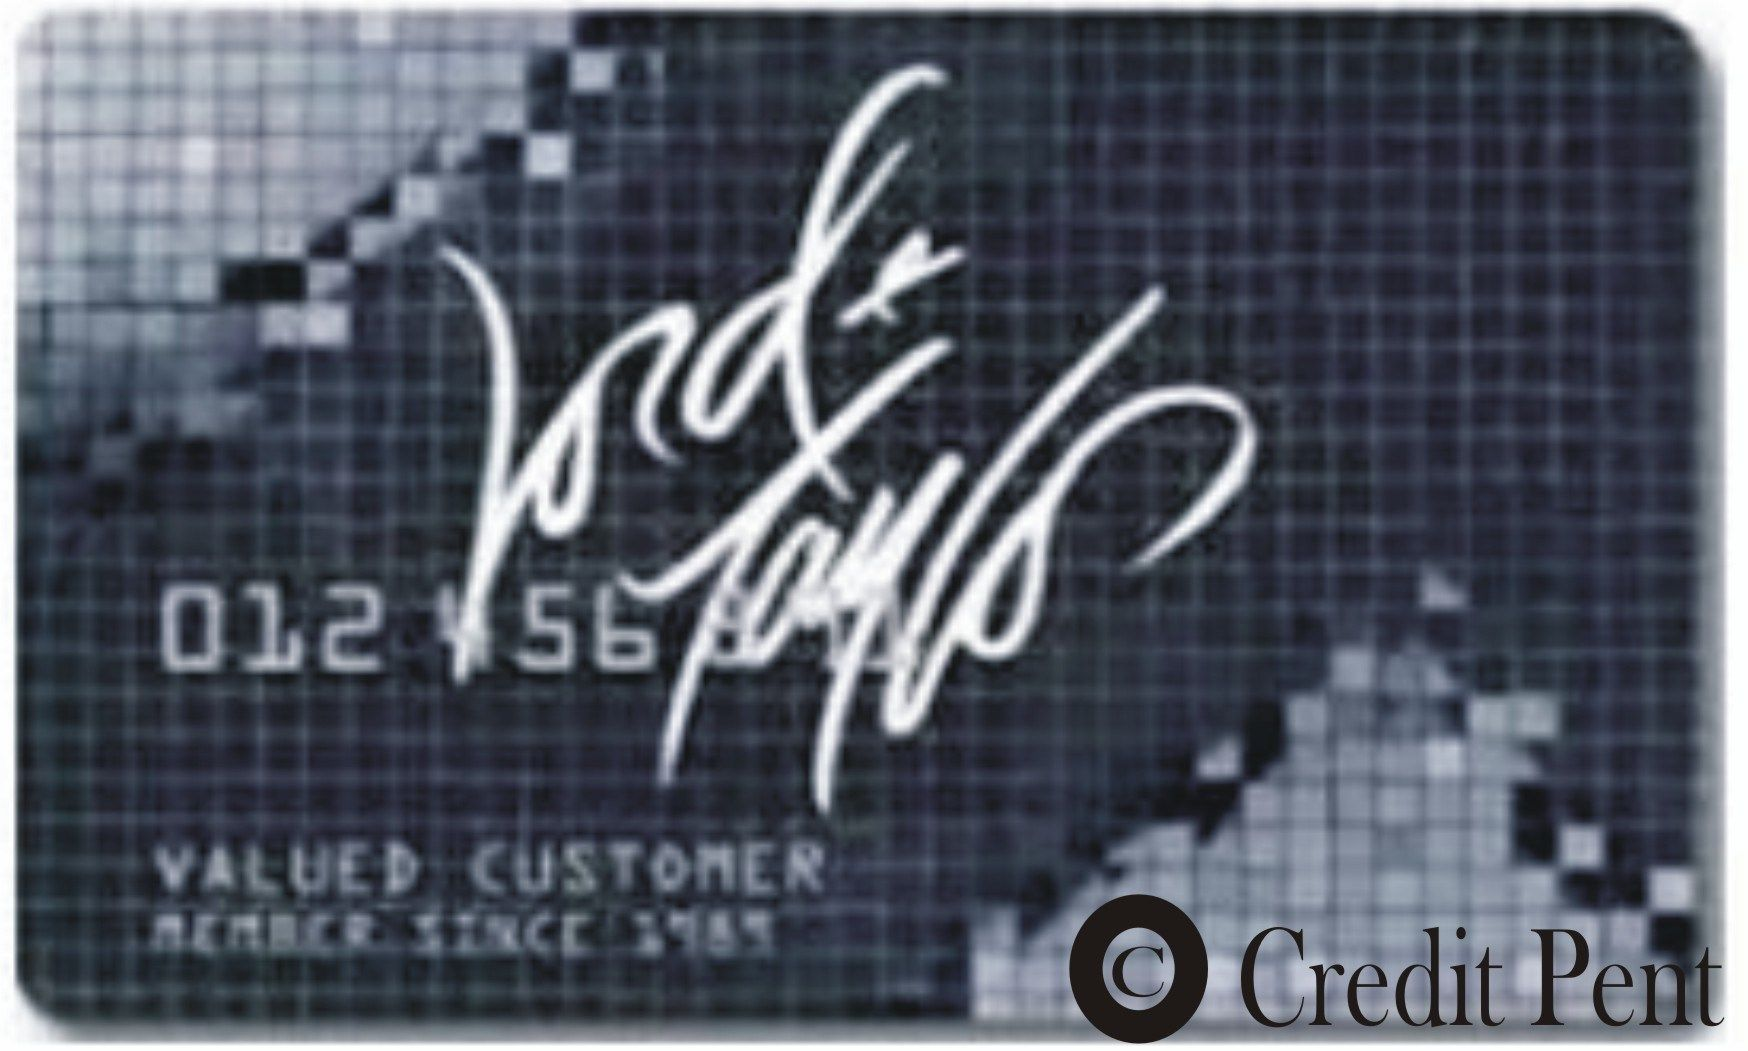 Lord and taylor credit card login online payment